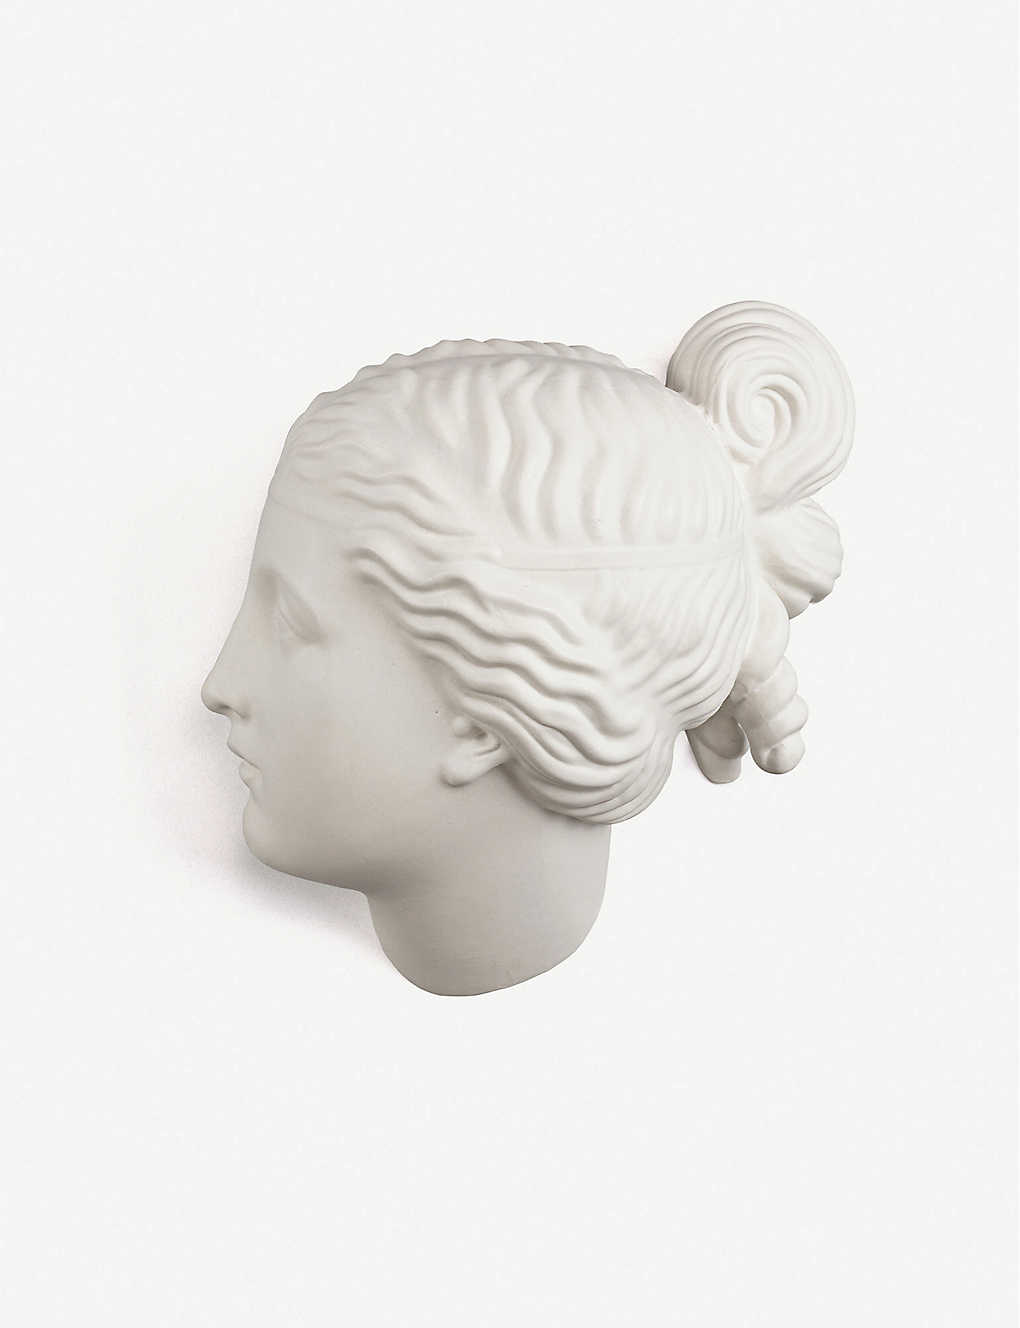 SELETTI: Female head porcelain decoration 37cm